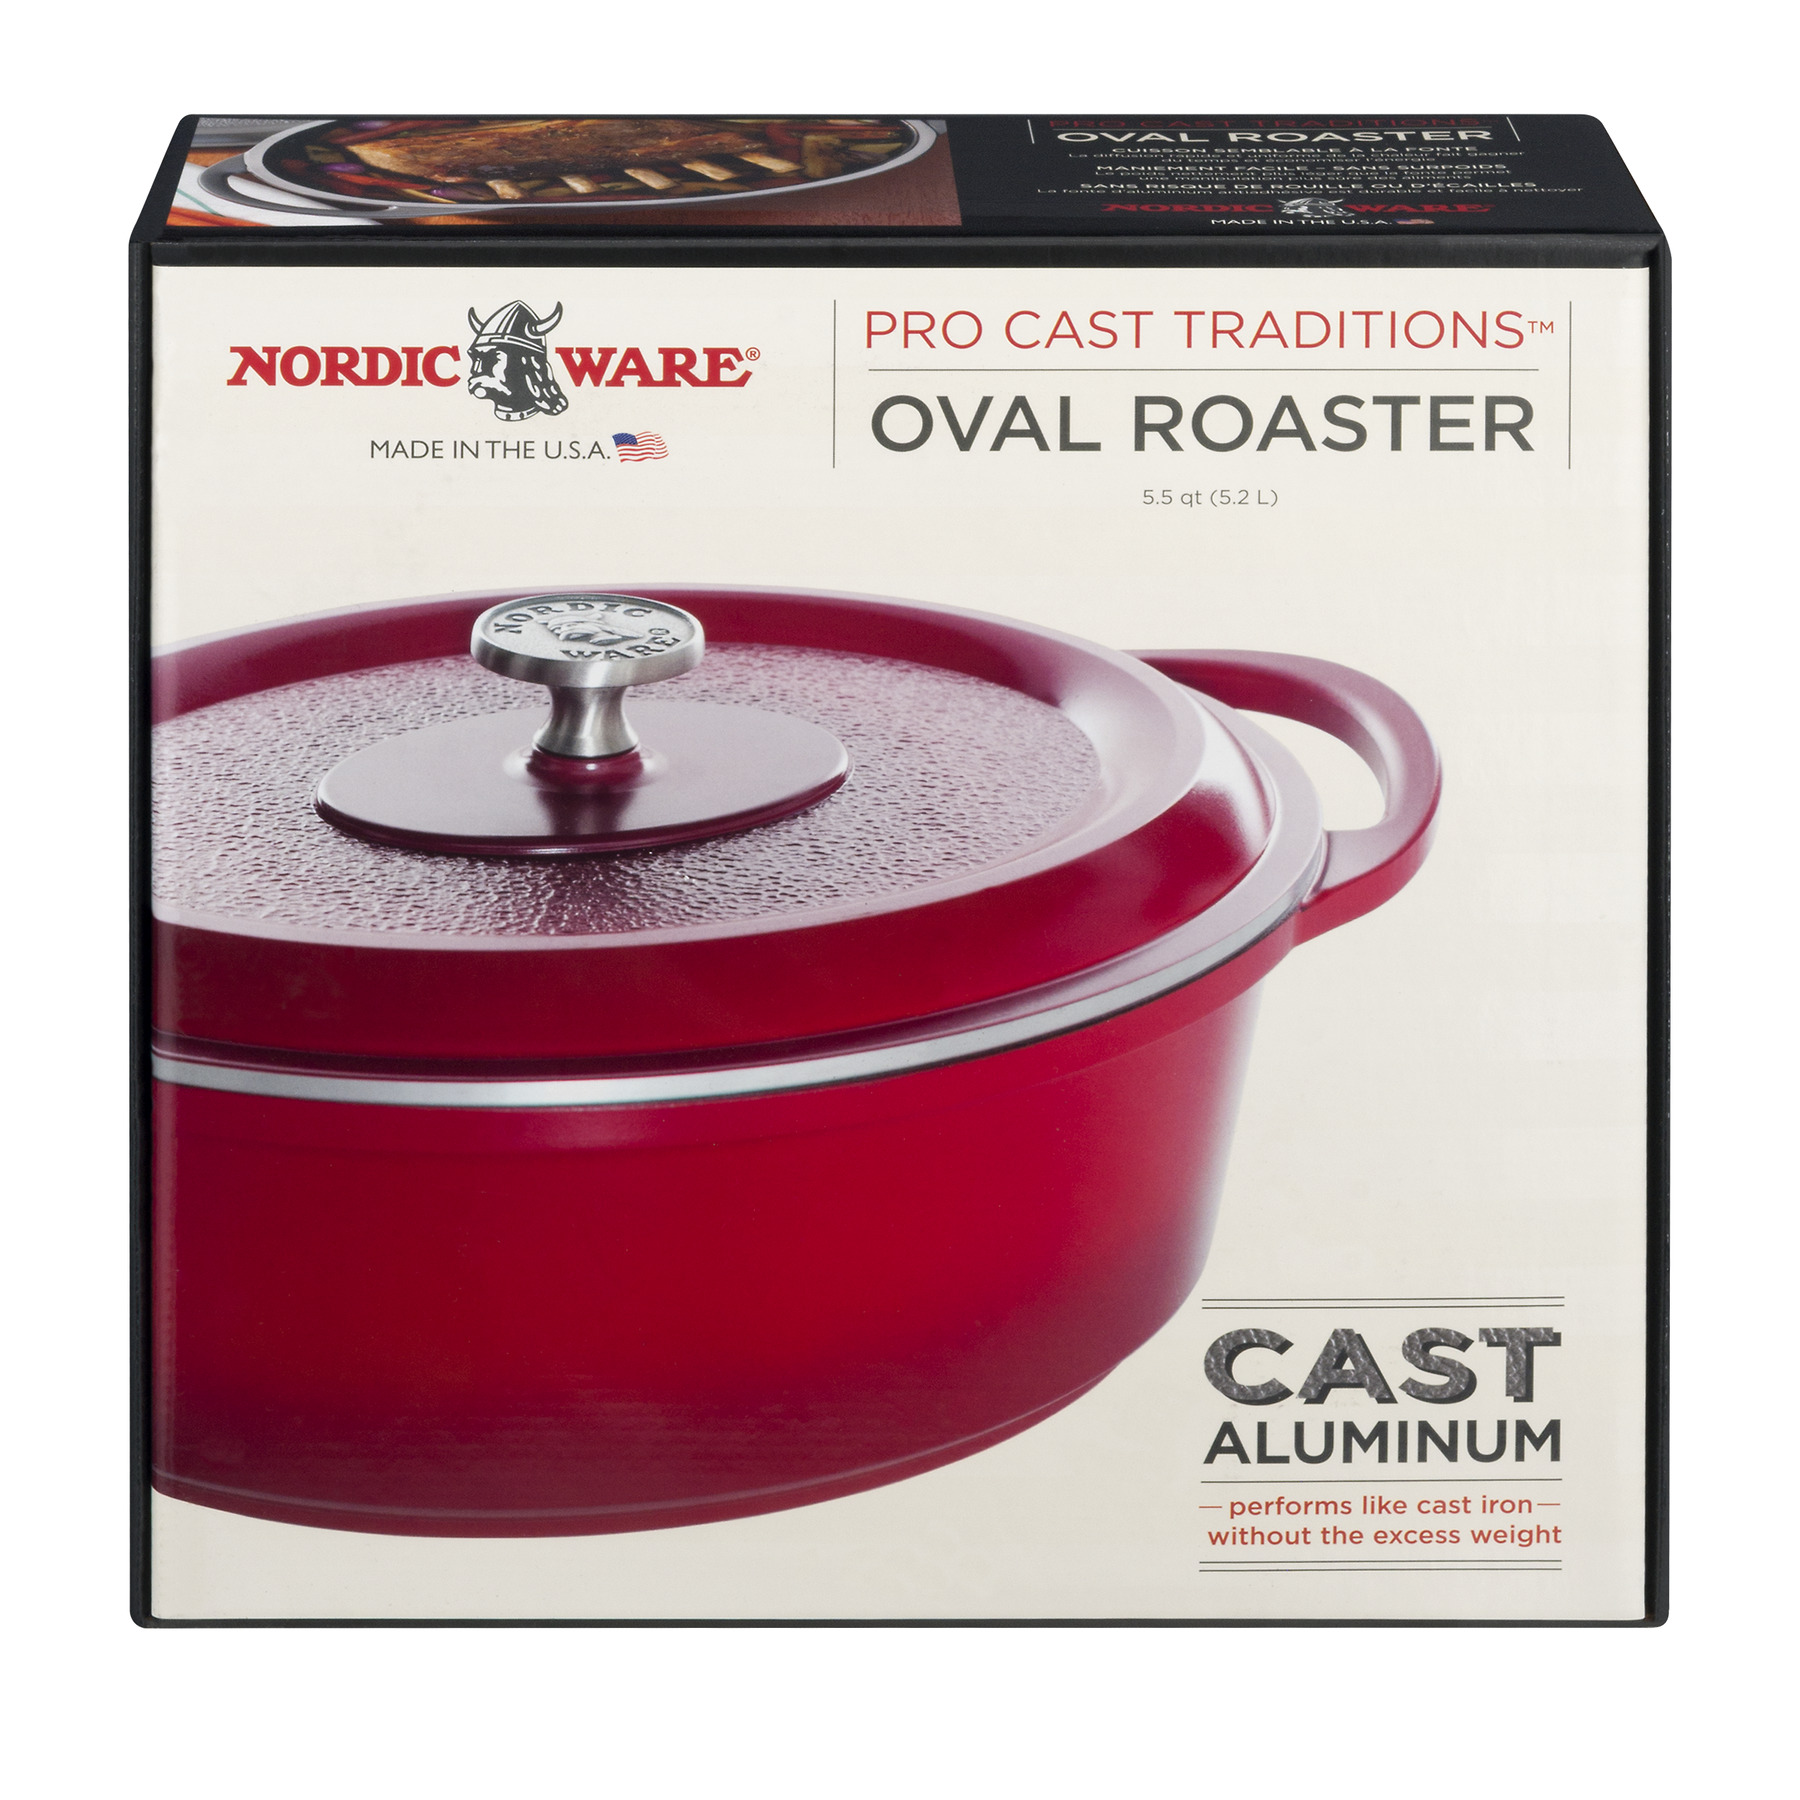 Nordic Ware Pro Cast Traditions Oval Cast Aluminum Roaster, Cranberry, 1.0 CT